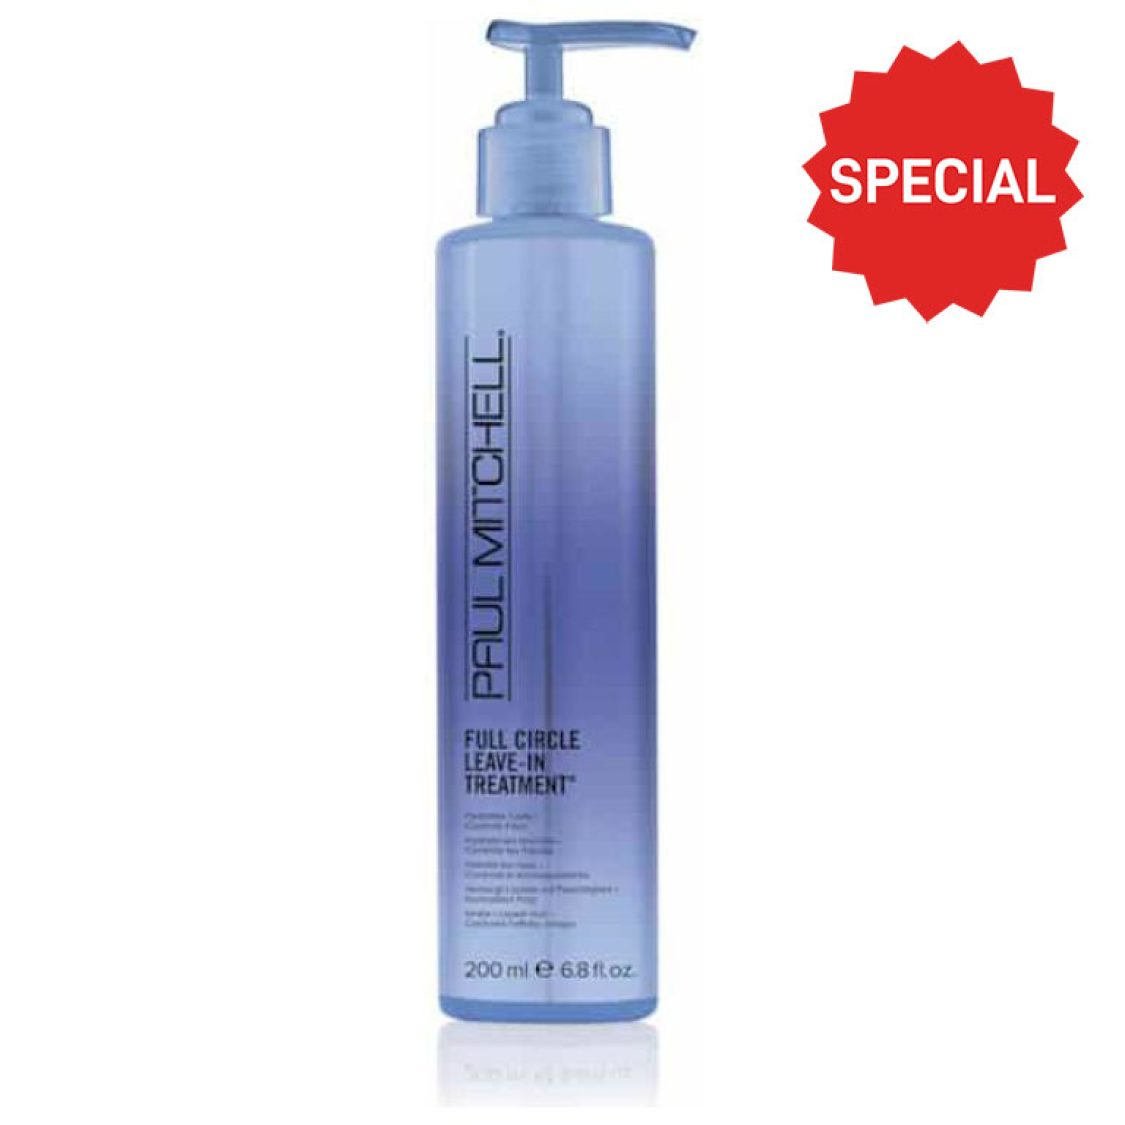 Paul Mitchell - Moisture - Full Circle Leave-In Treatment 200ml